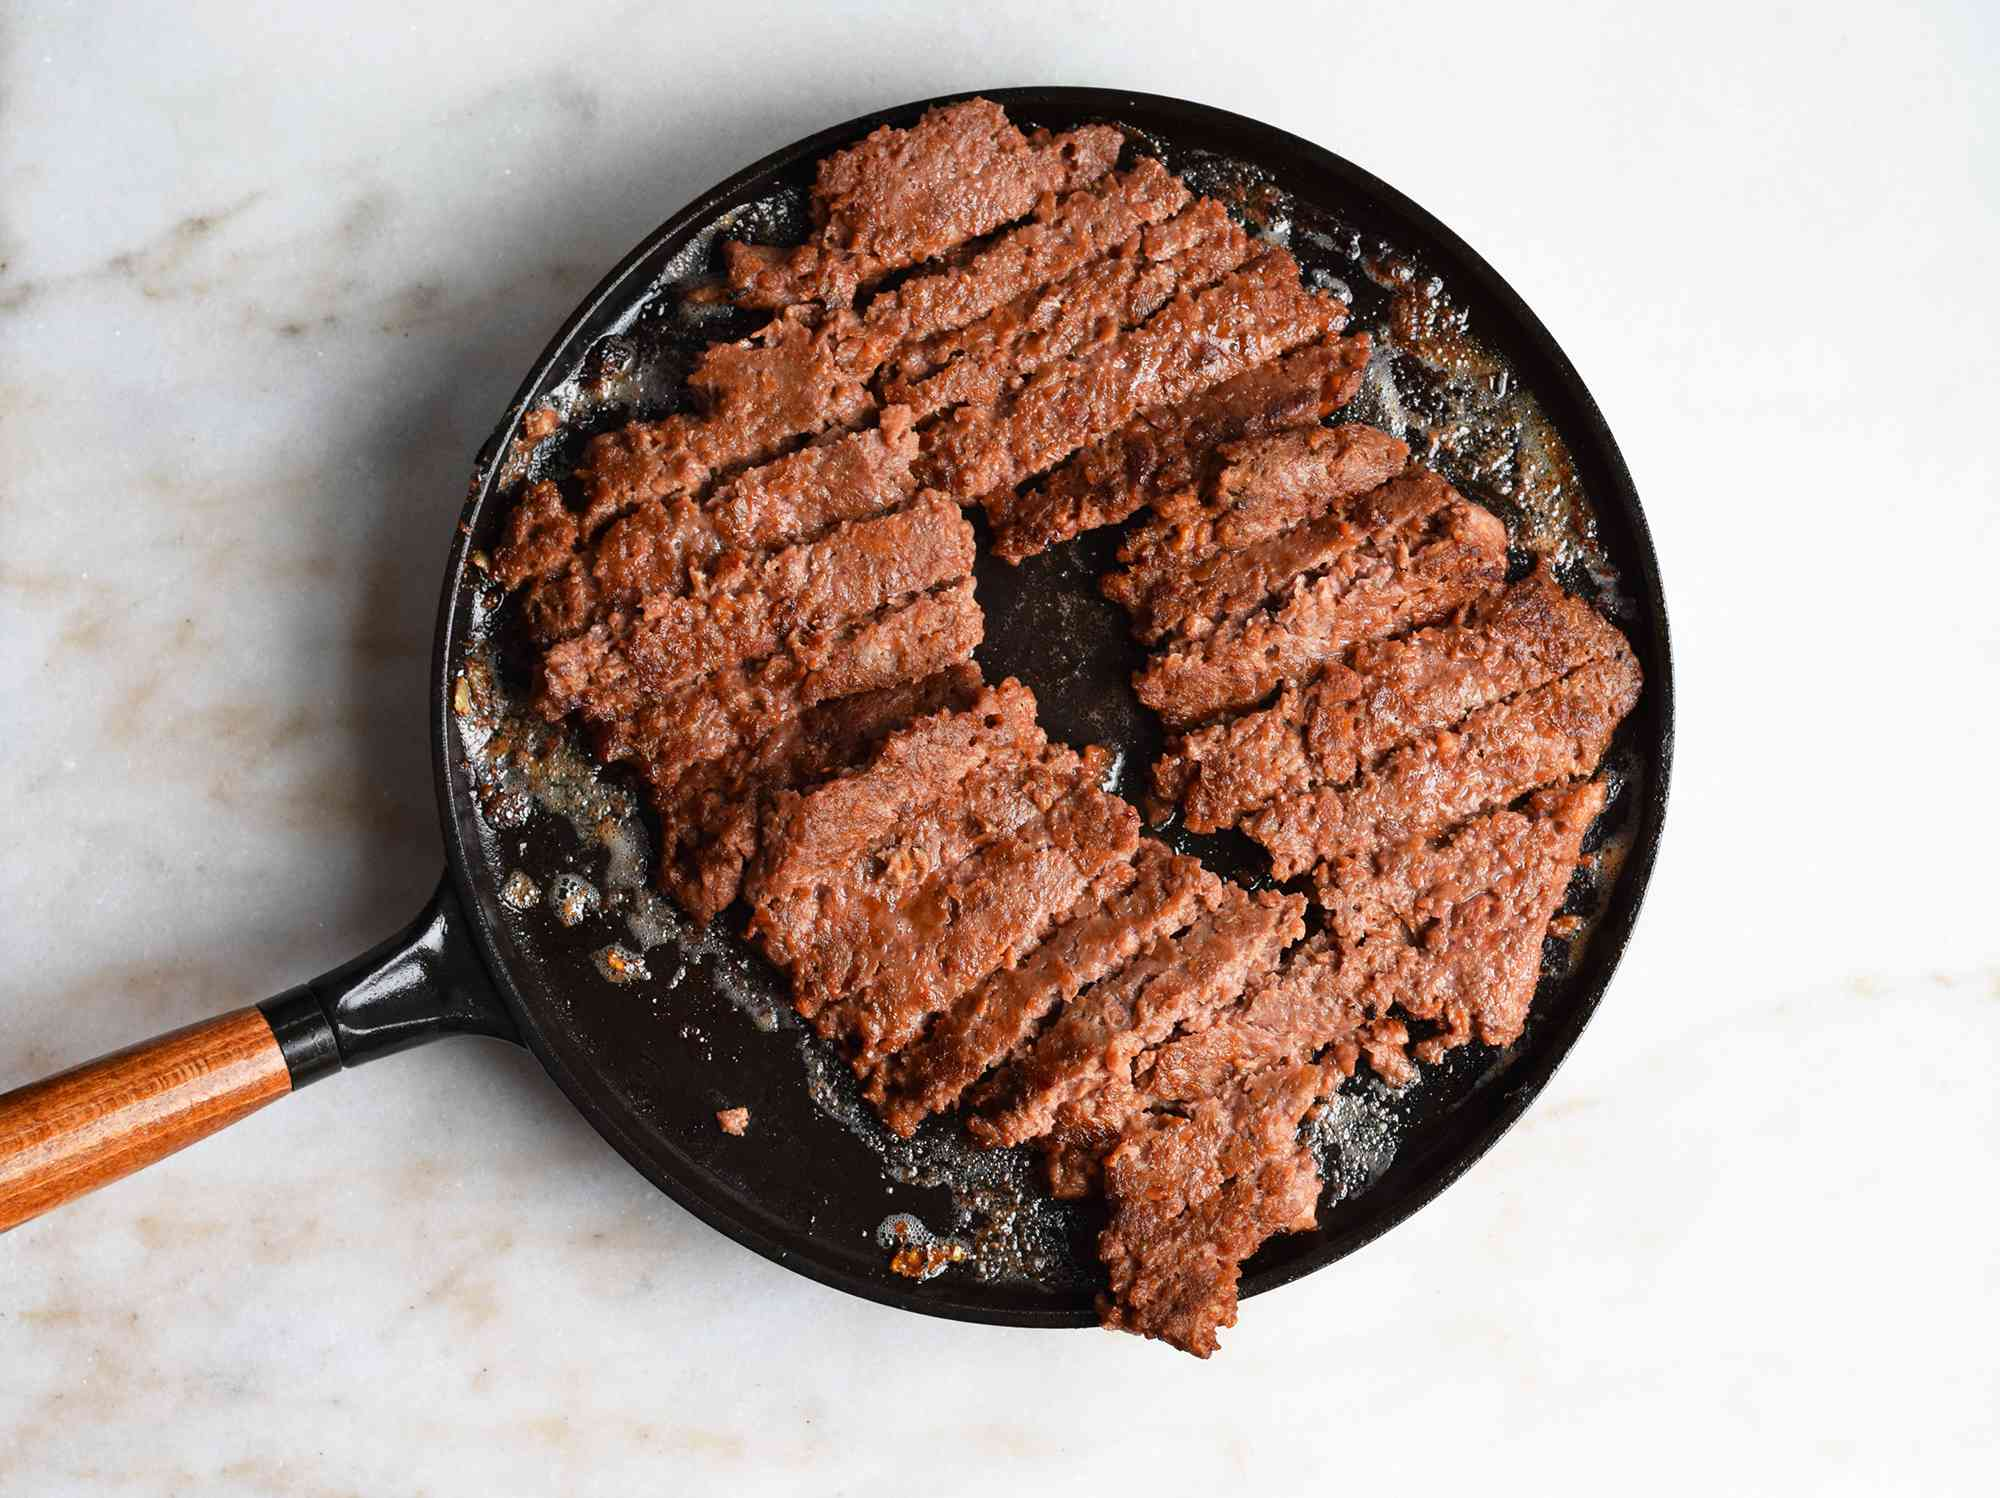 beyond meat cooked on a saute pan